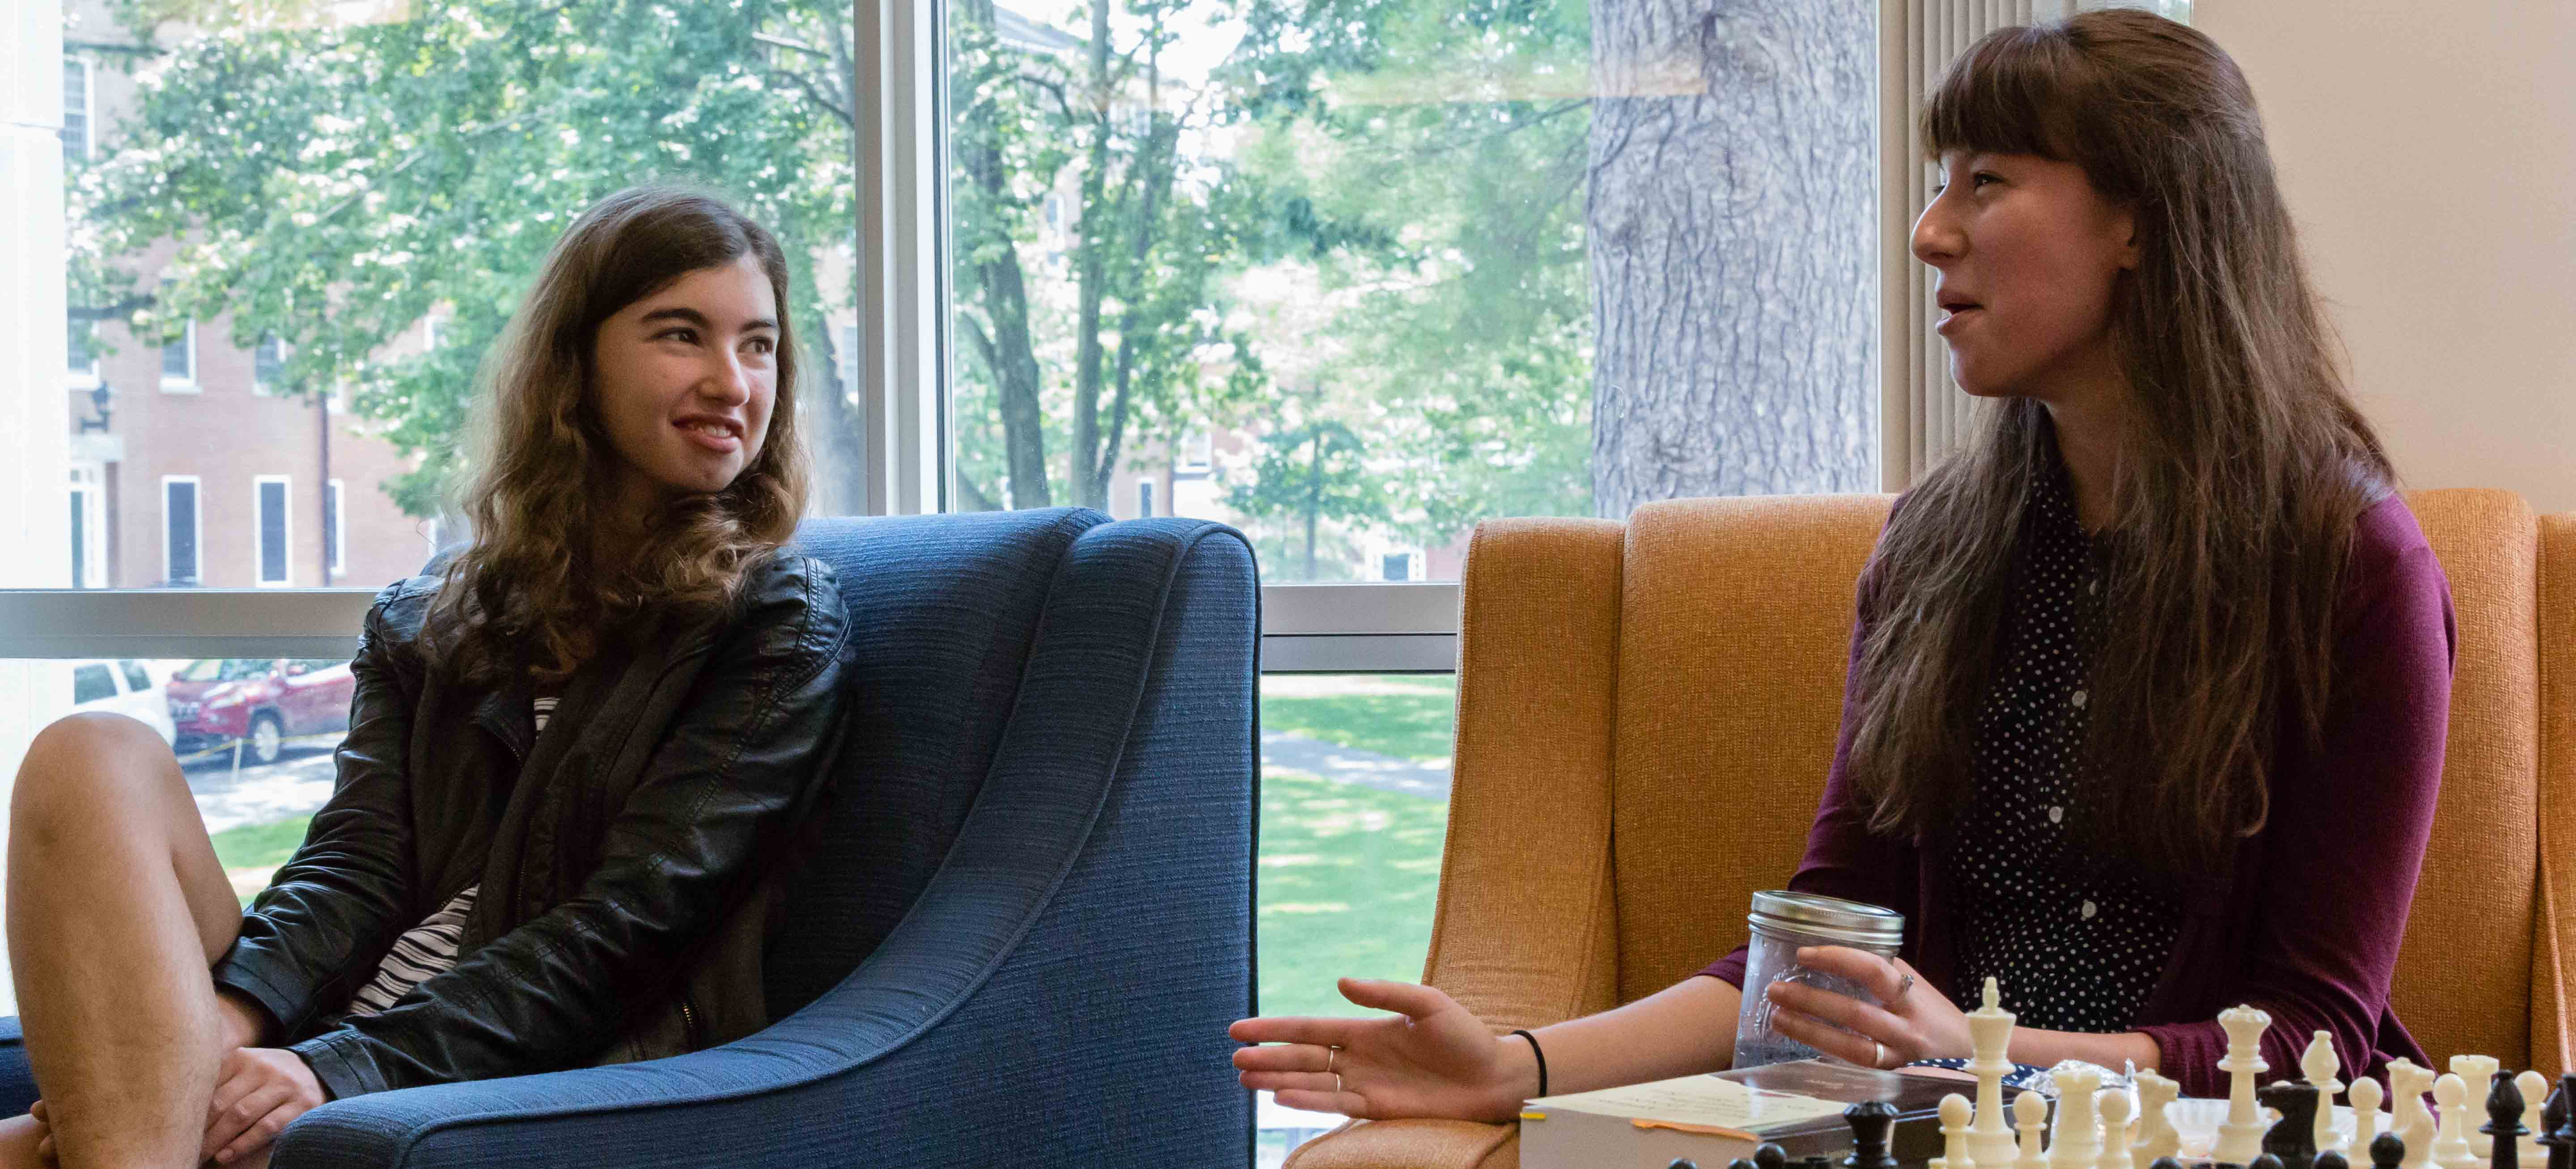 Madeline K. Ruoff '18 asks questions of Emma Hartman '17 on tips for crafting a creative thesis.